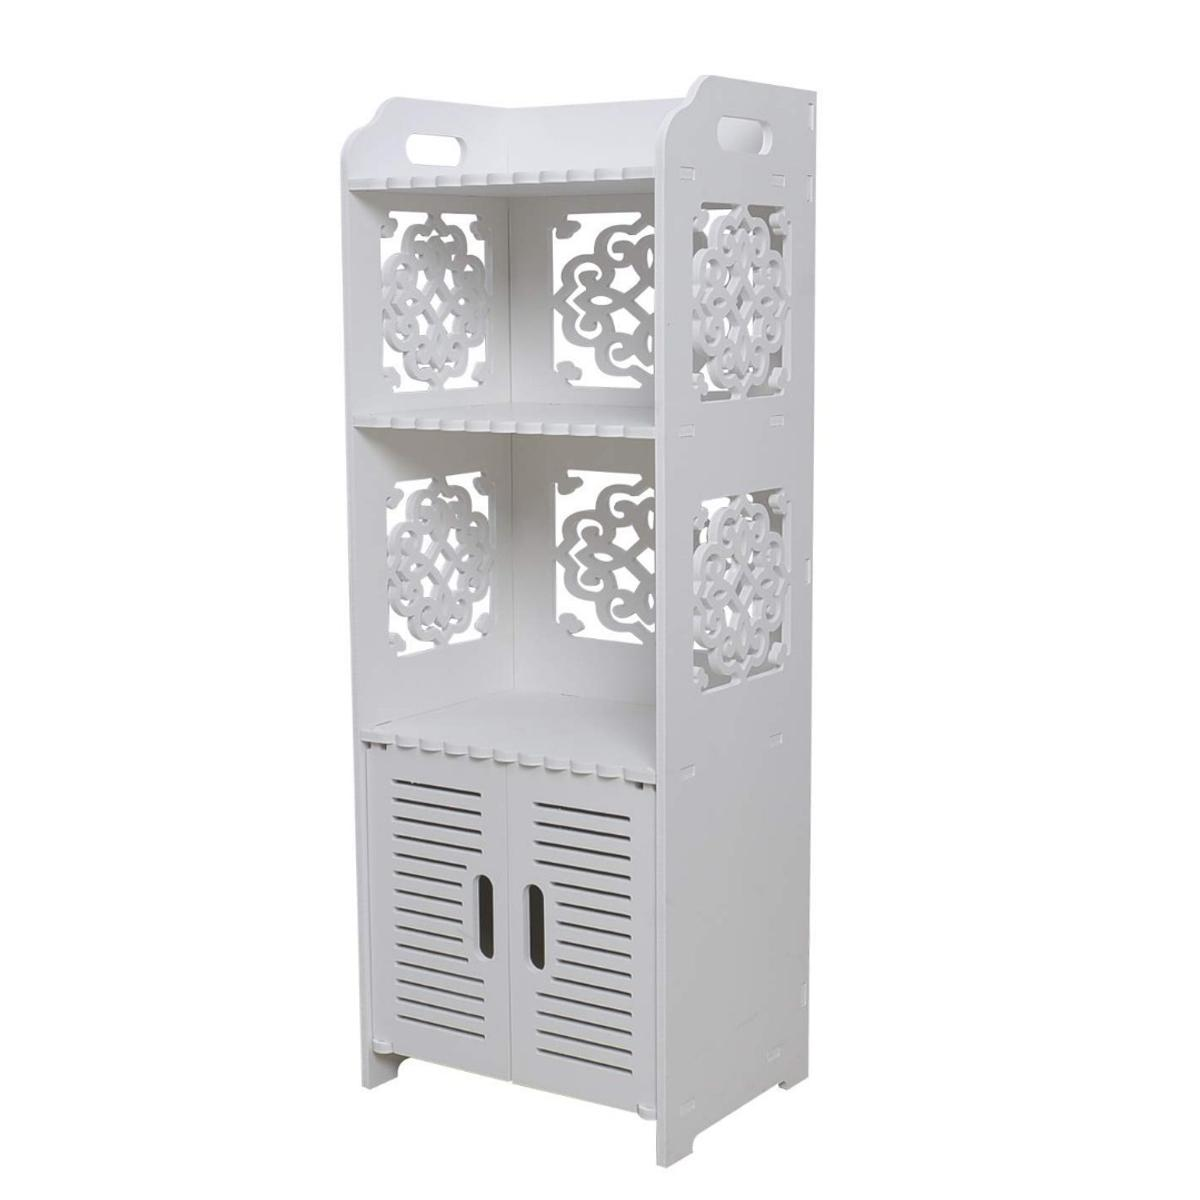 Awesome Bathroom Storage Cabinet Floor Standing Water In M7 Home Interior And Landscaping Oversignezvosmurscom